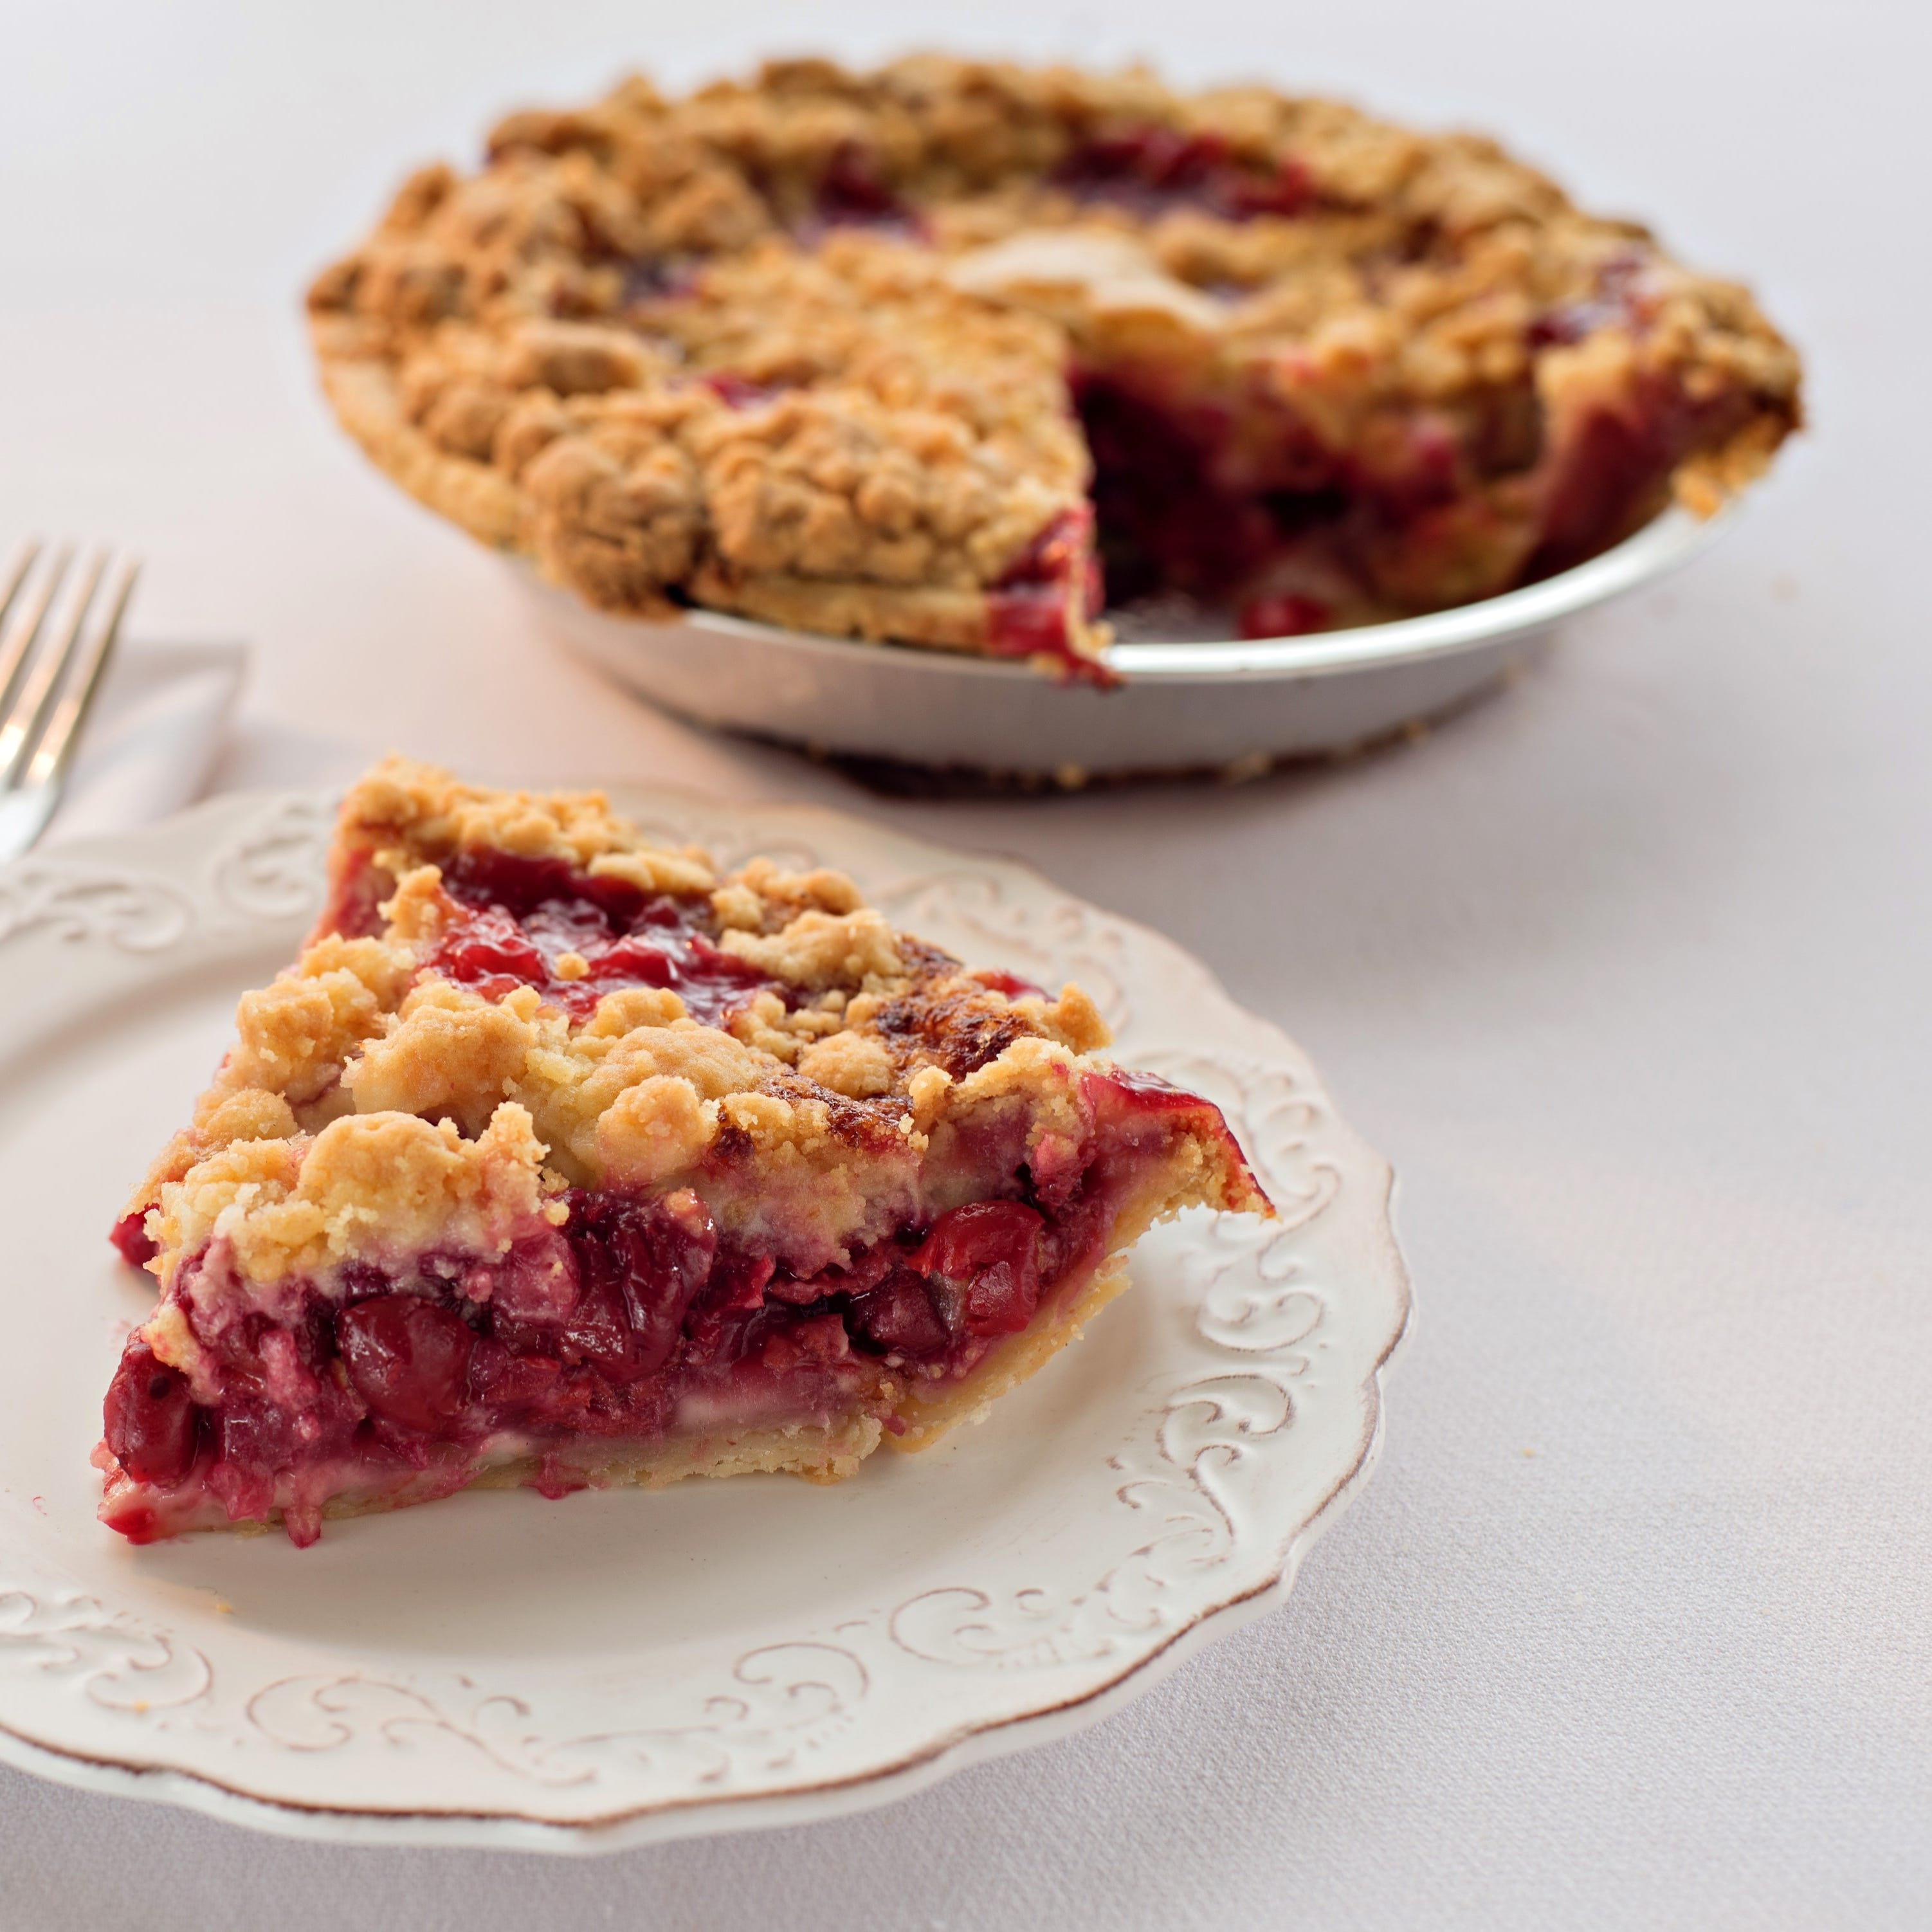 Get a free slice of pie Wednesday at Grand Traverse Pie Company